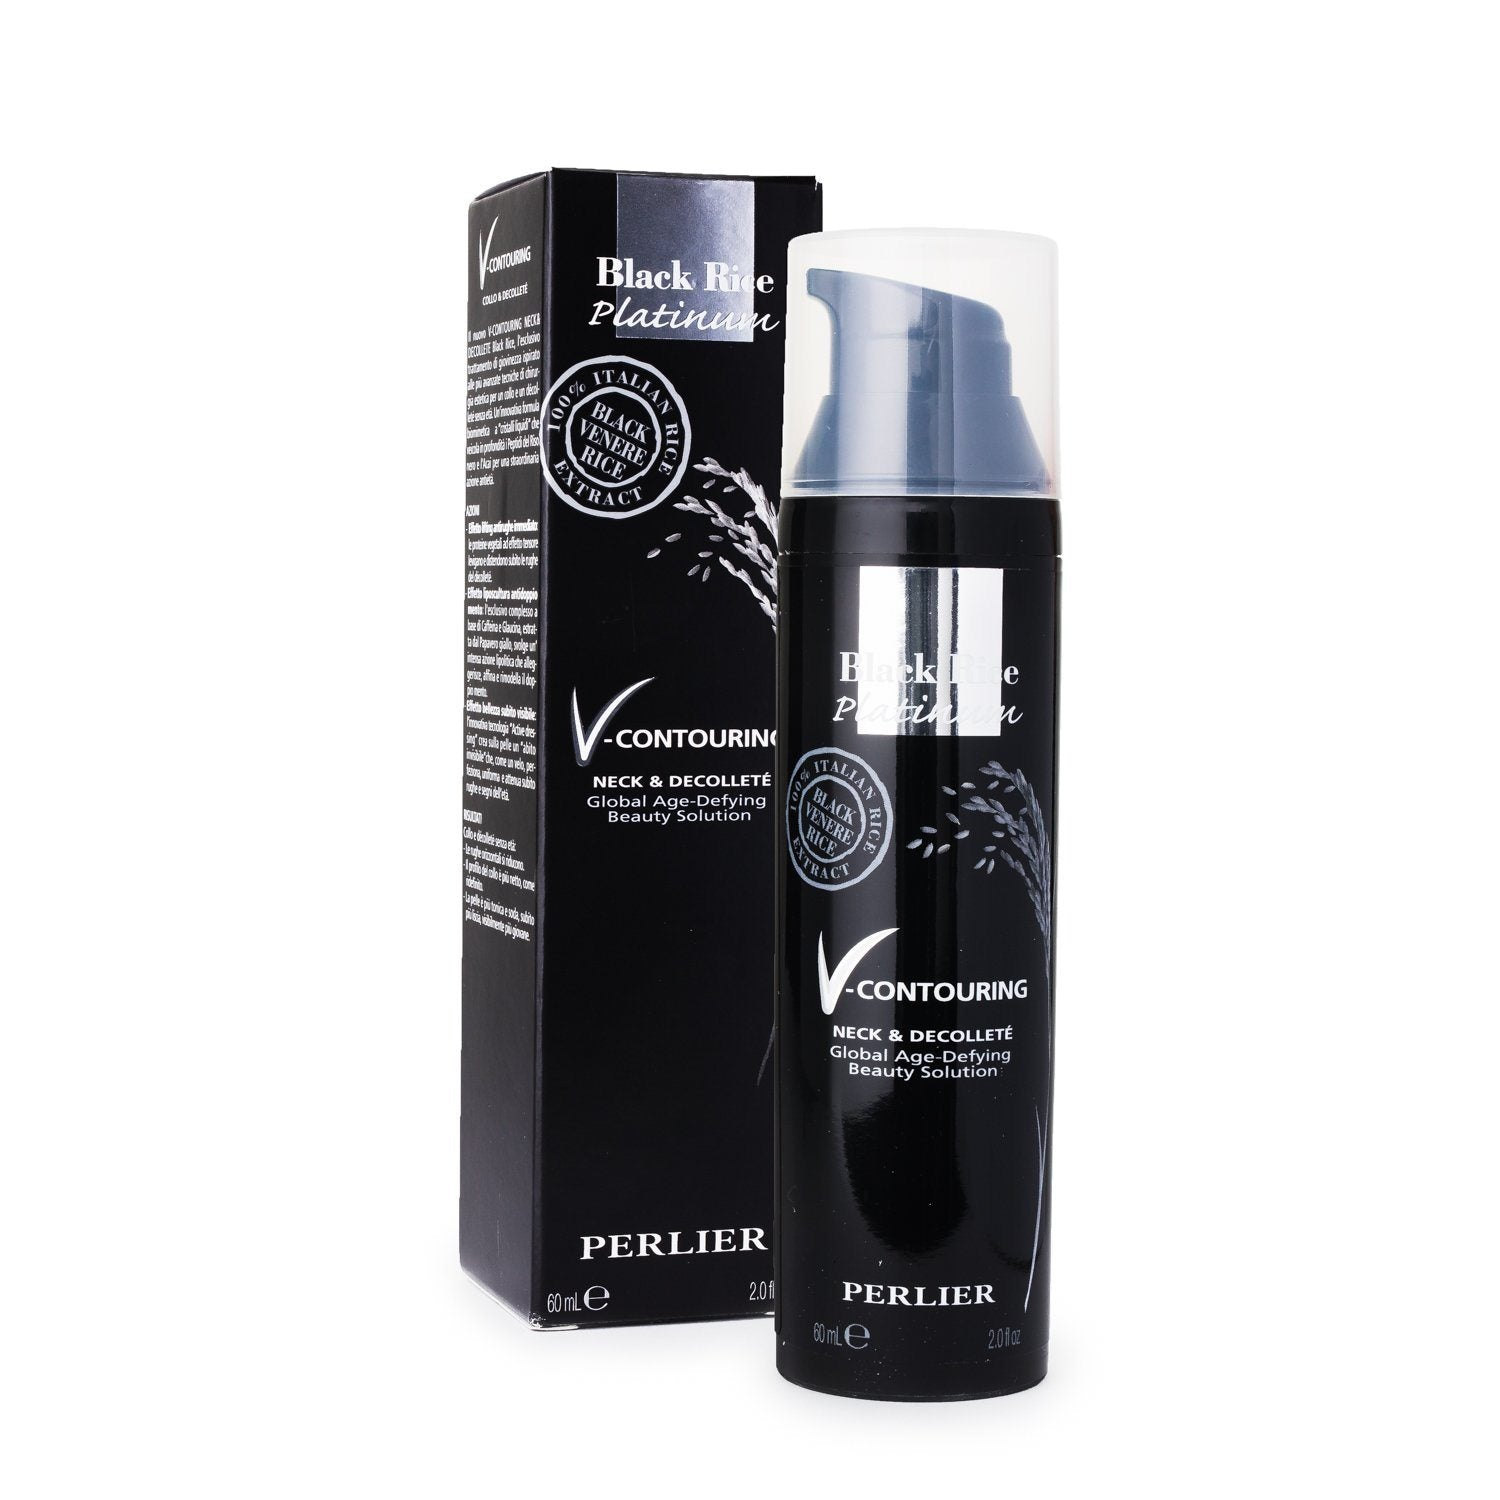 Black Rice Platinum V-Contouring Neck & Decollete Serum 2.0 fl oz